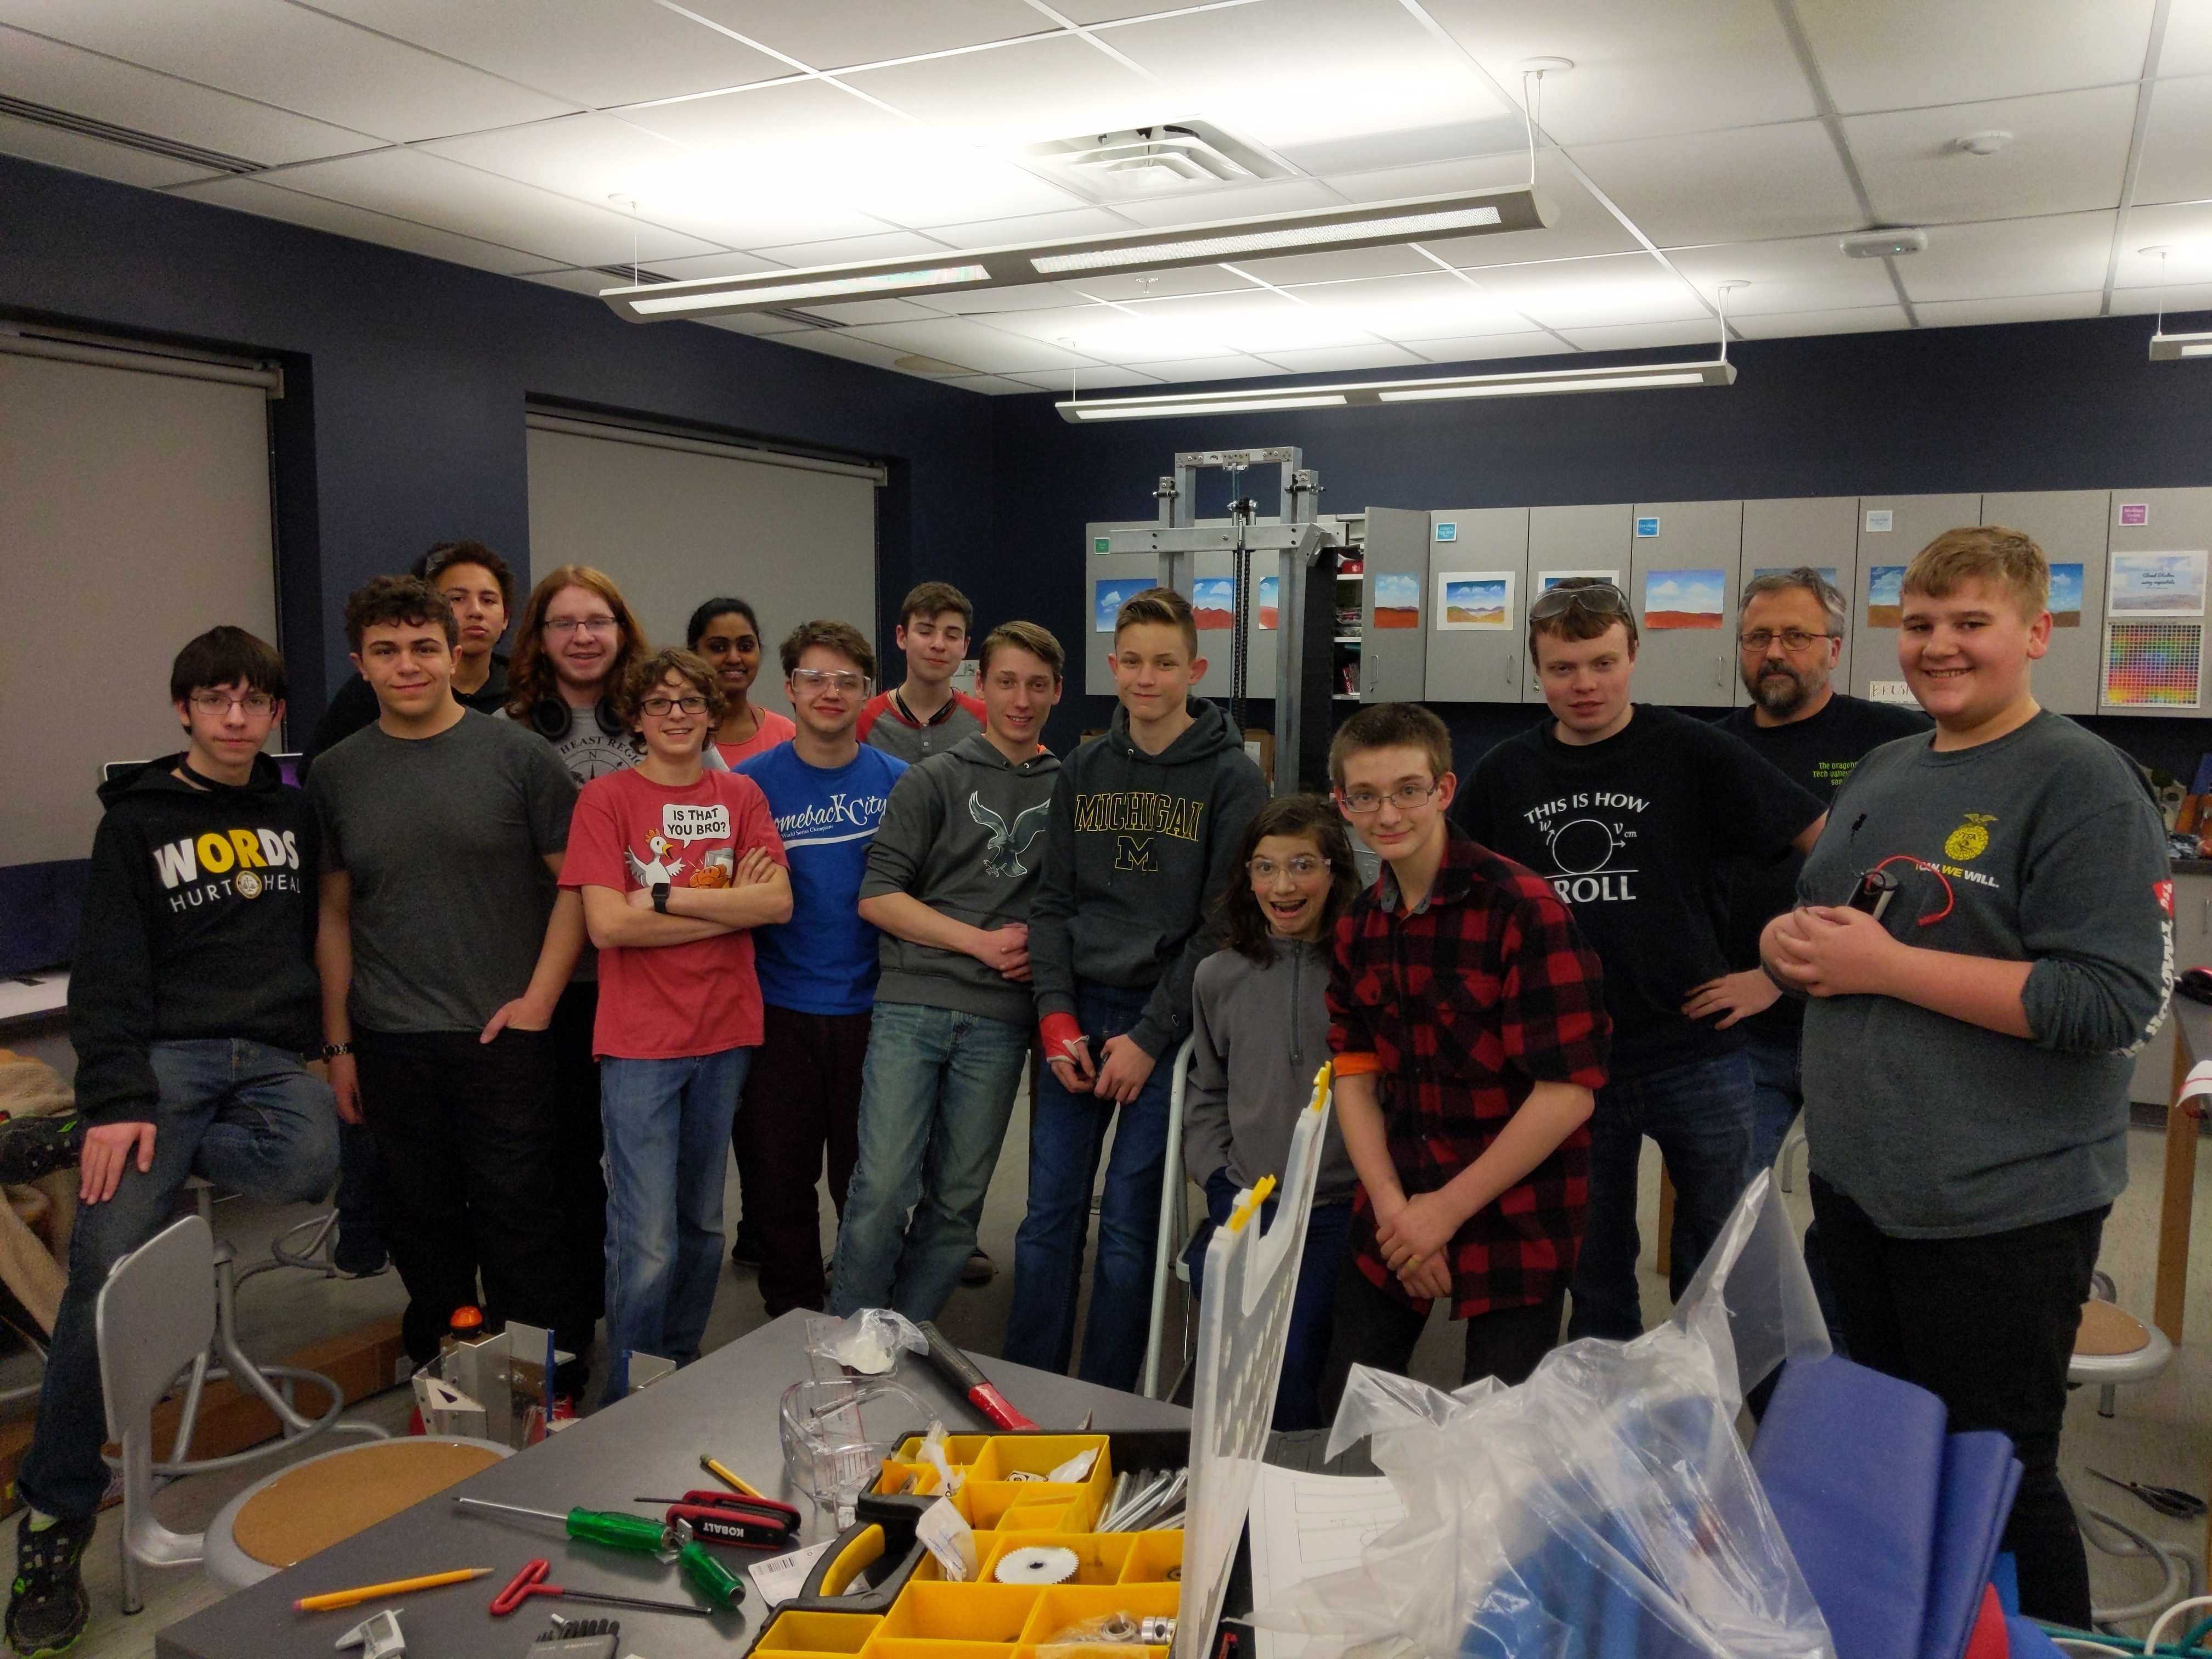 Photo of TVHS robotics team posing in a classroom